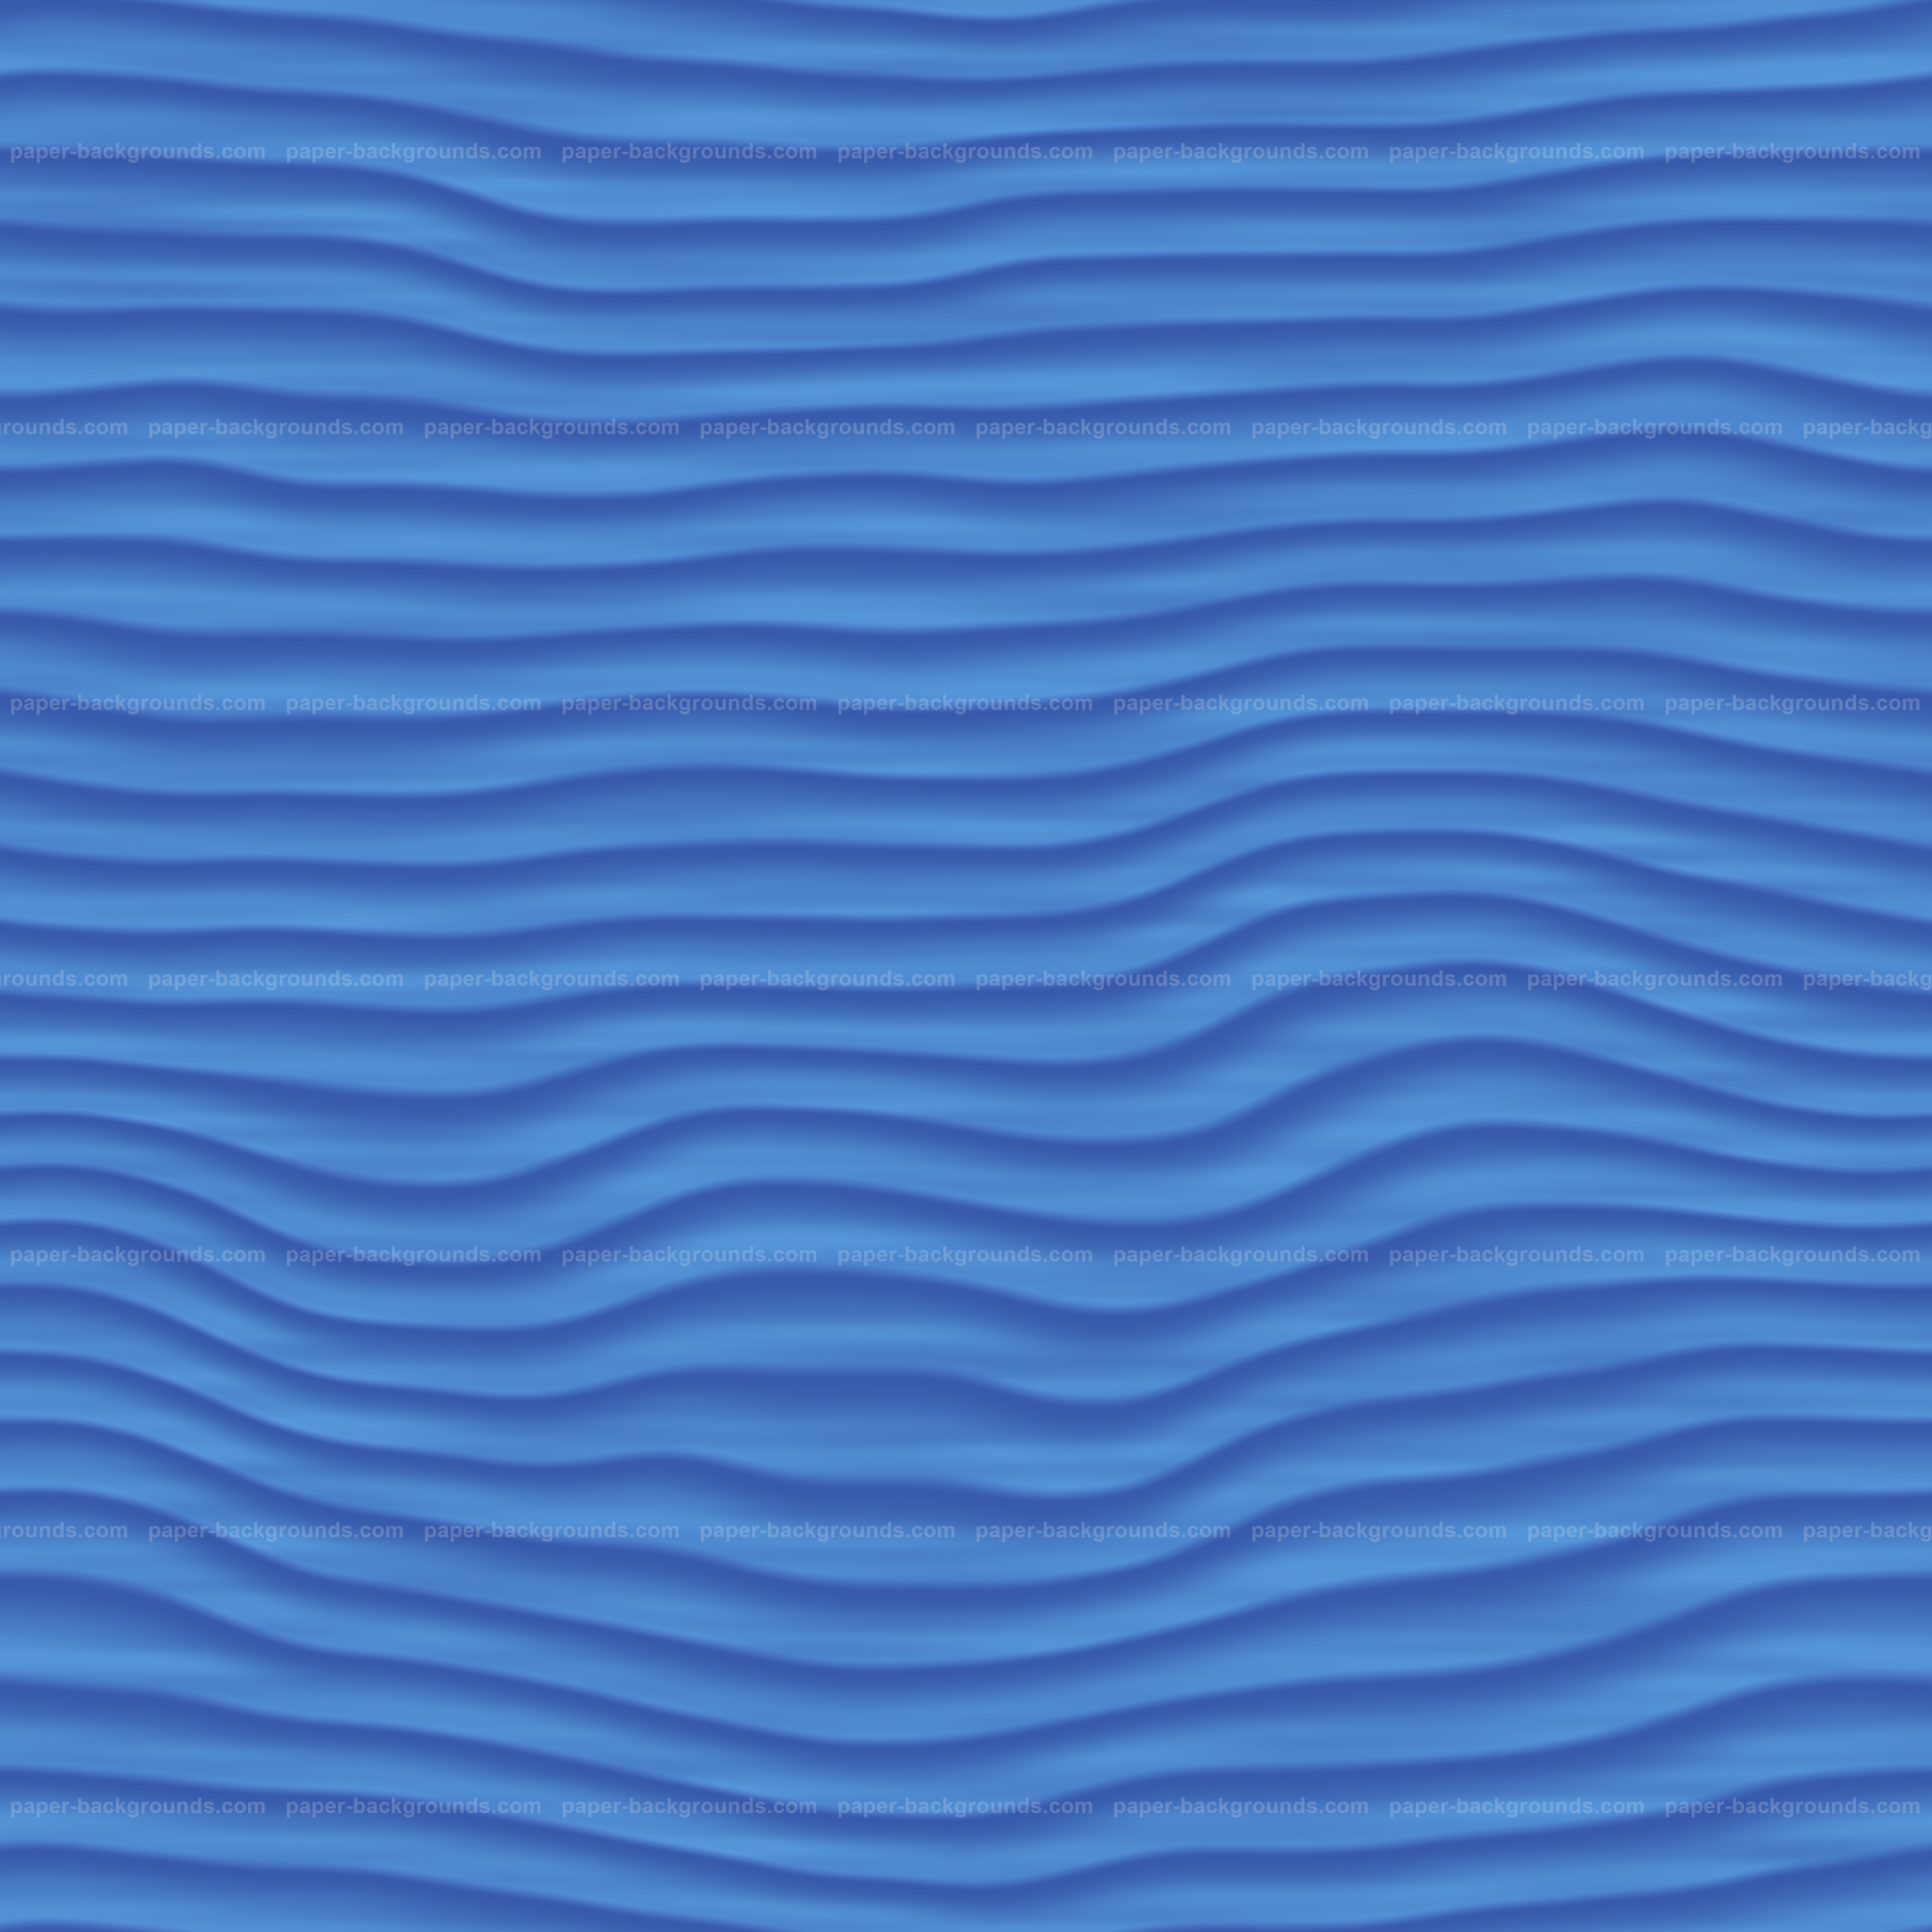 Paper Backgrounds Seamless Blue Waves Pattern High